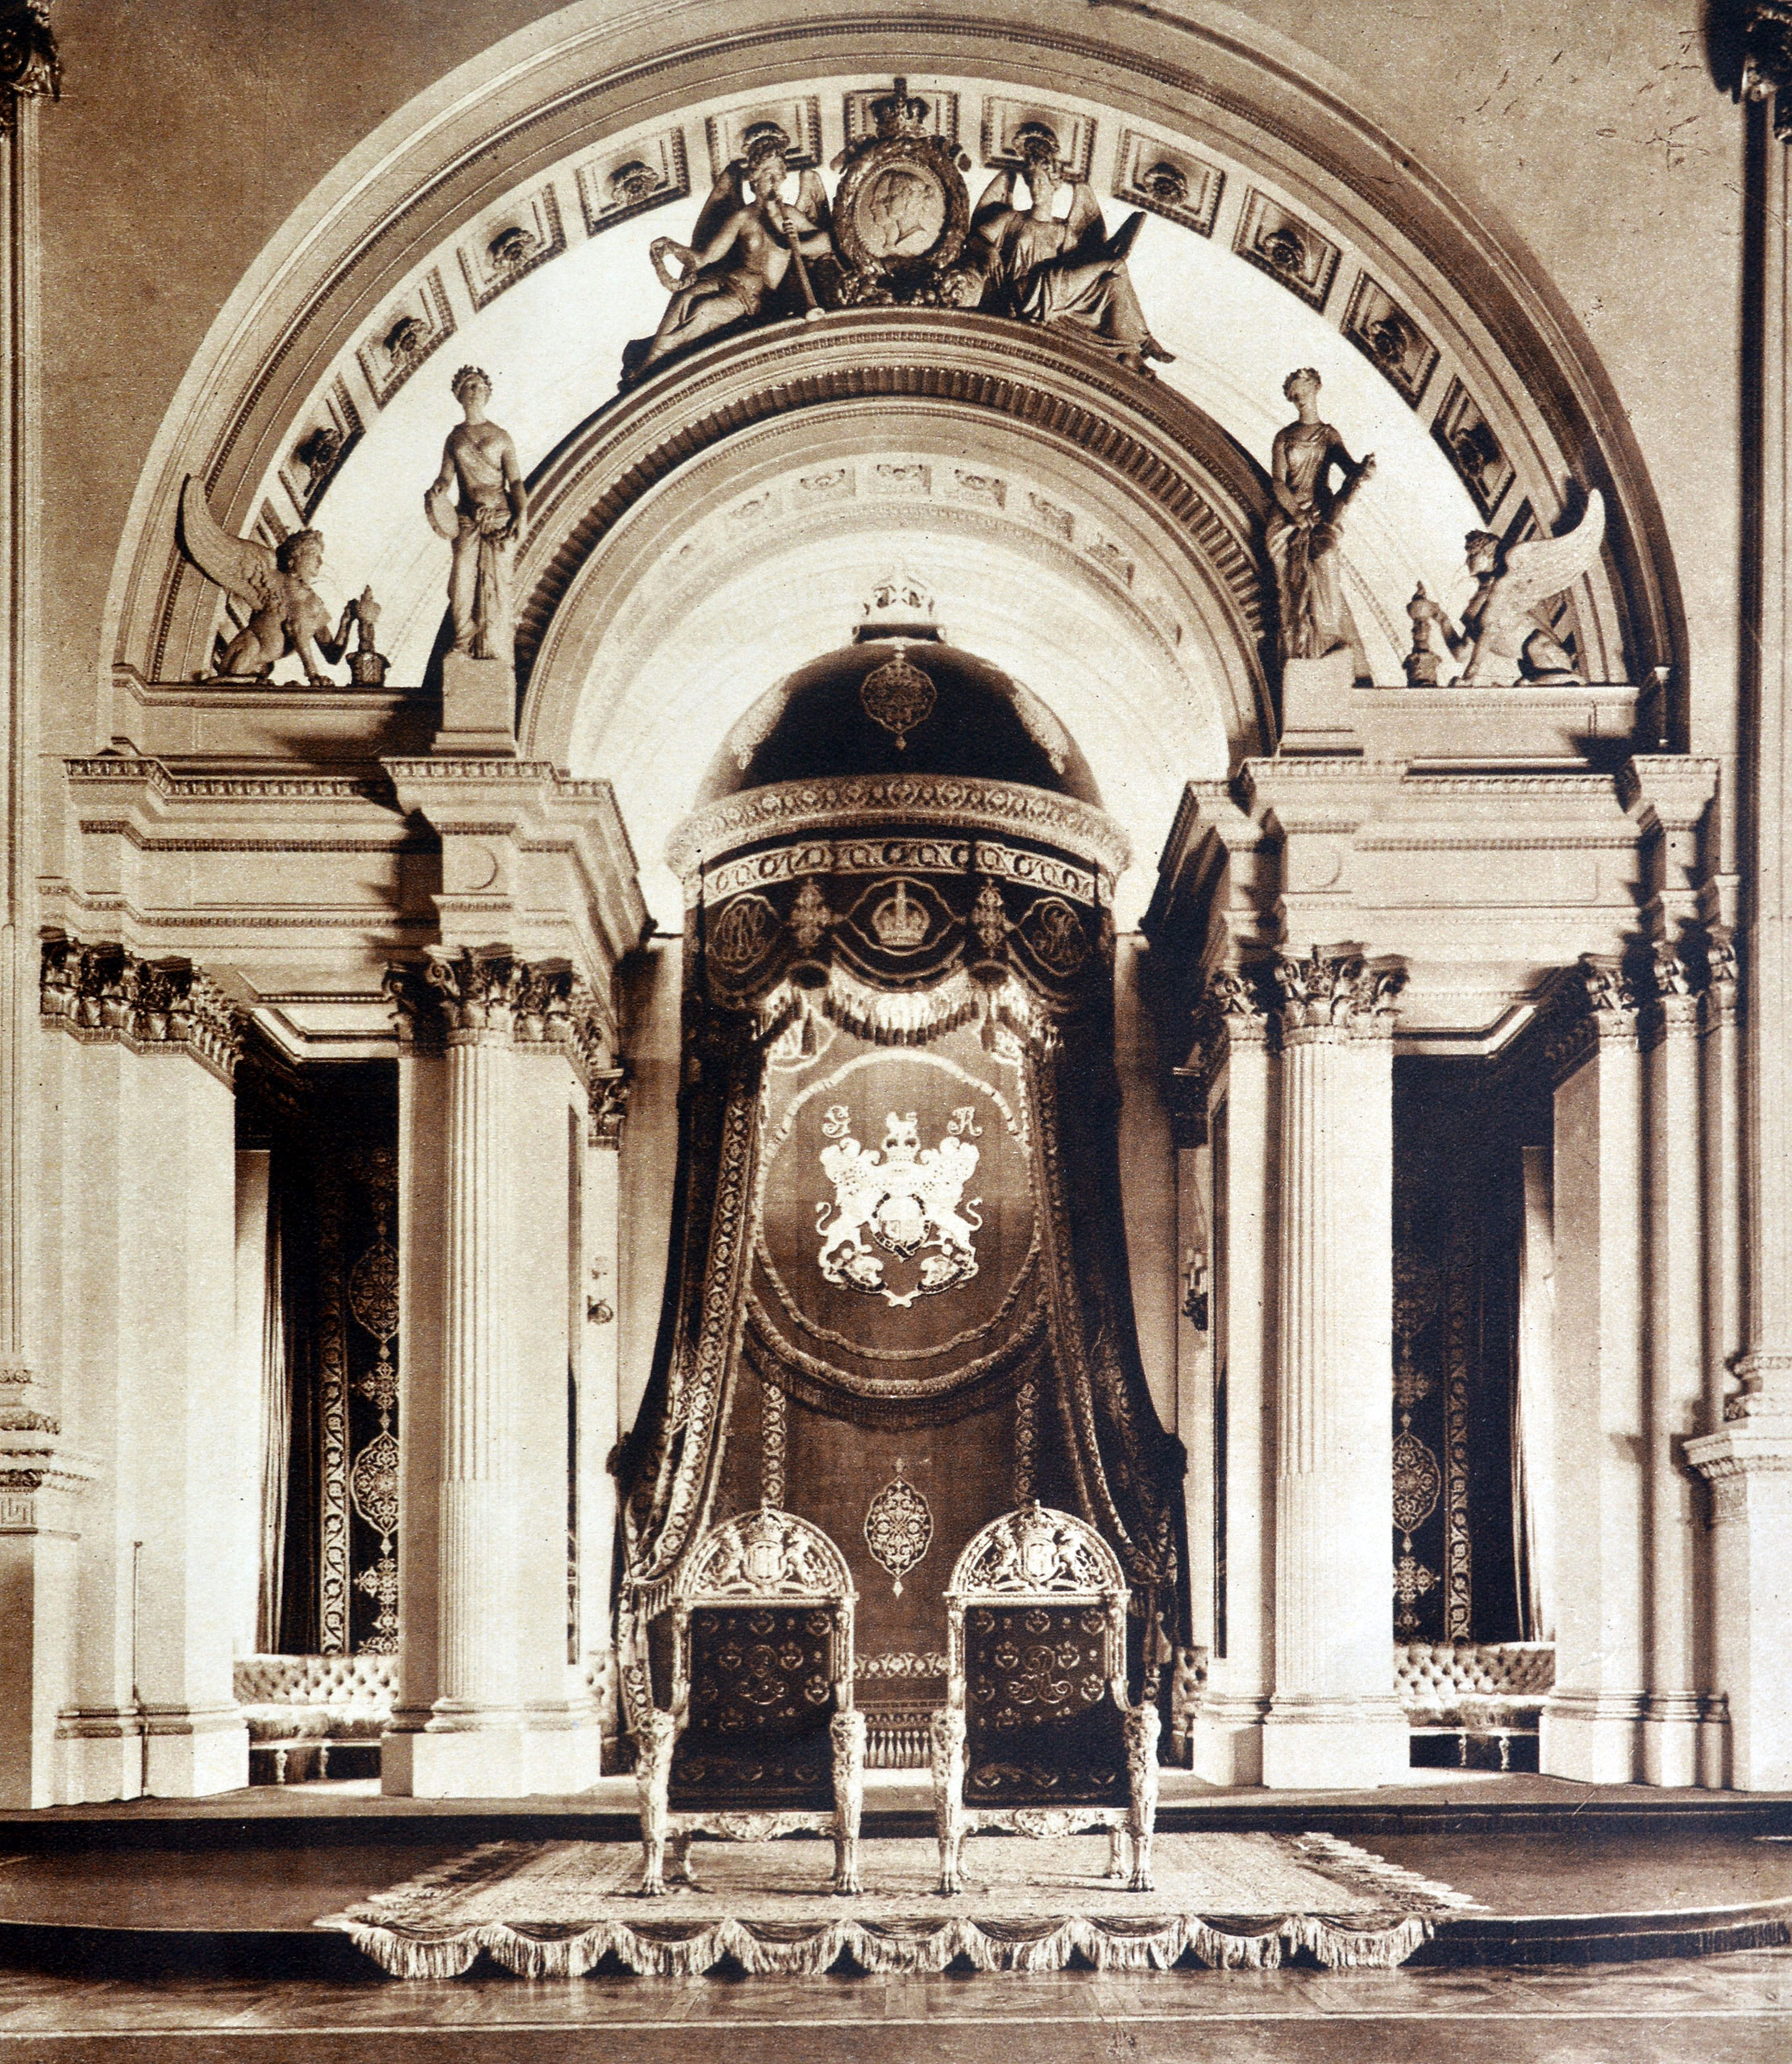 Throne room at Buckingham palace in London, 1935.